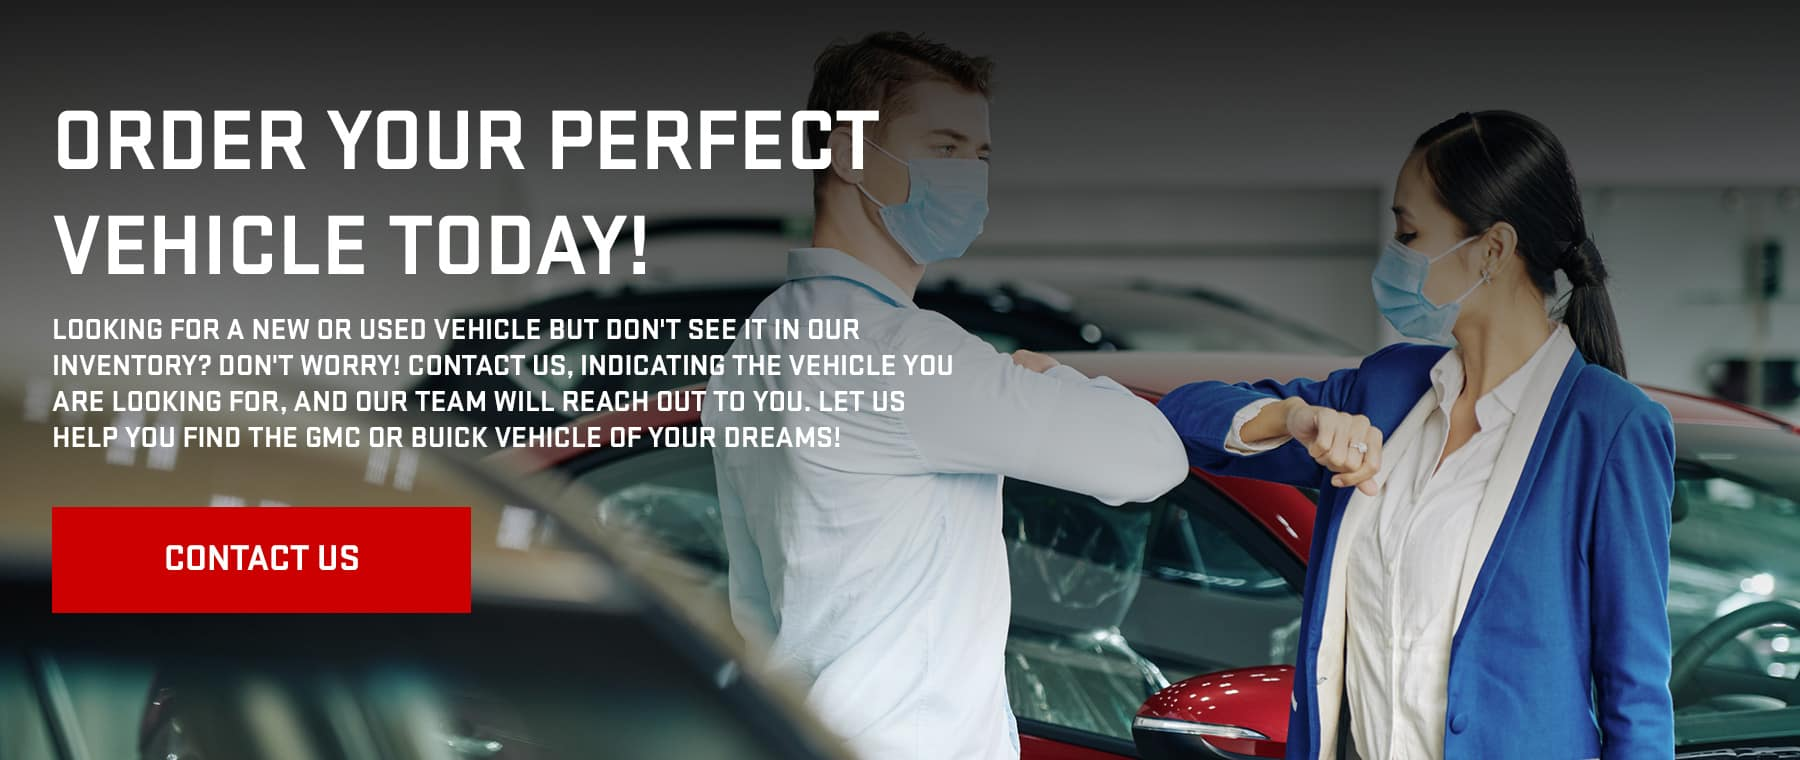 Order Your Perfect Vehicle Today!, Looking for a new or used vehicle but don't see it in our inventory? Don't worry! Contact us, indicating the vehicle you are looking for, and our team will reach out to you. Let us help you find the GMC or Buick vehicle of your dreams!